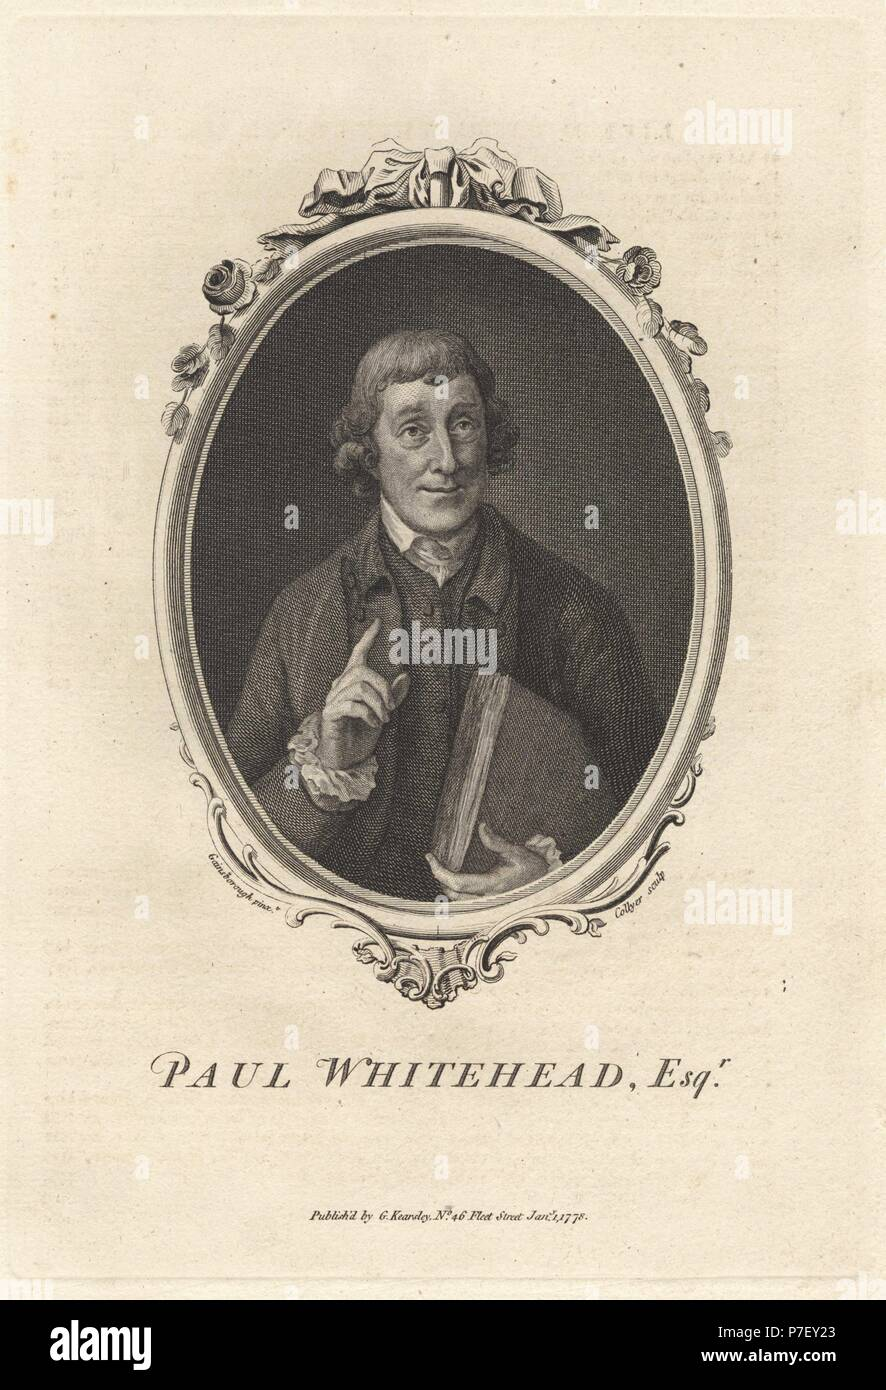 Portrait of Paul Whitehead, 1710–1774, British satirist and secretary to the Hellfire Club. Copperplate engraving by Joshua Collyer after Thomas Gainsborough from The Copper Plate Magazine or Monthly Treasure, G. Kearsley, London, 1778. Stock Photo